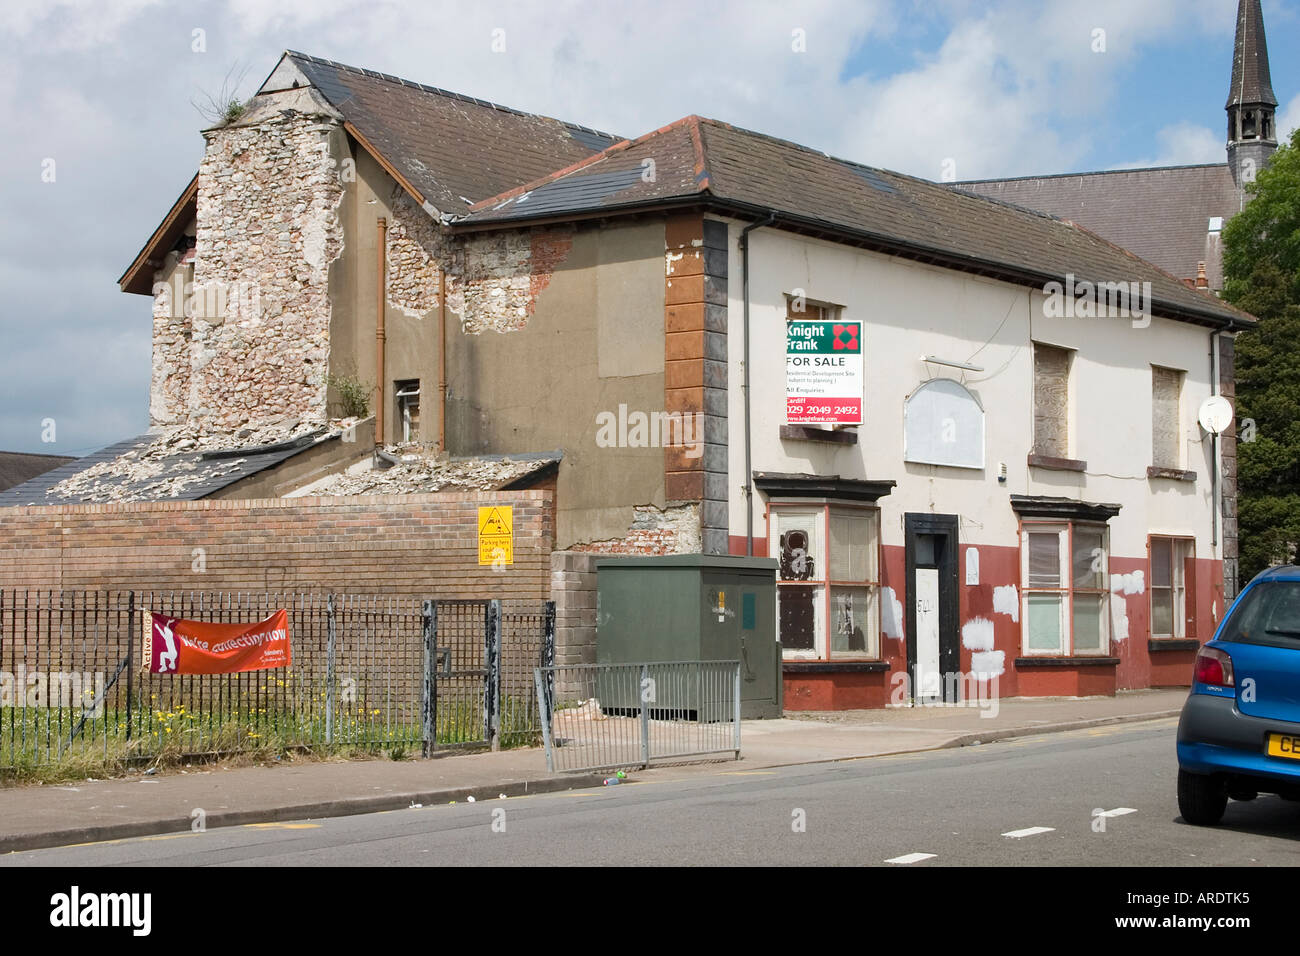 The Great Eastern public house Adamsdown Cardiff closed and fallen into disrepair - Stock Image